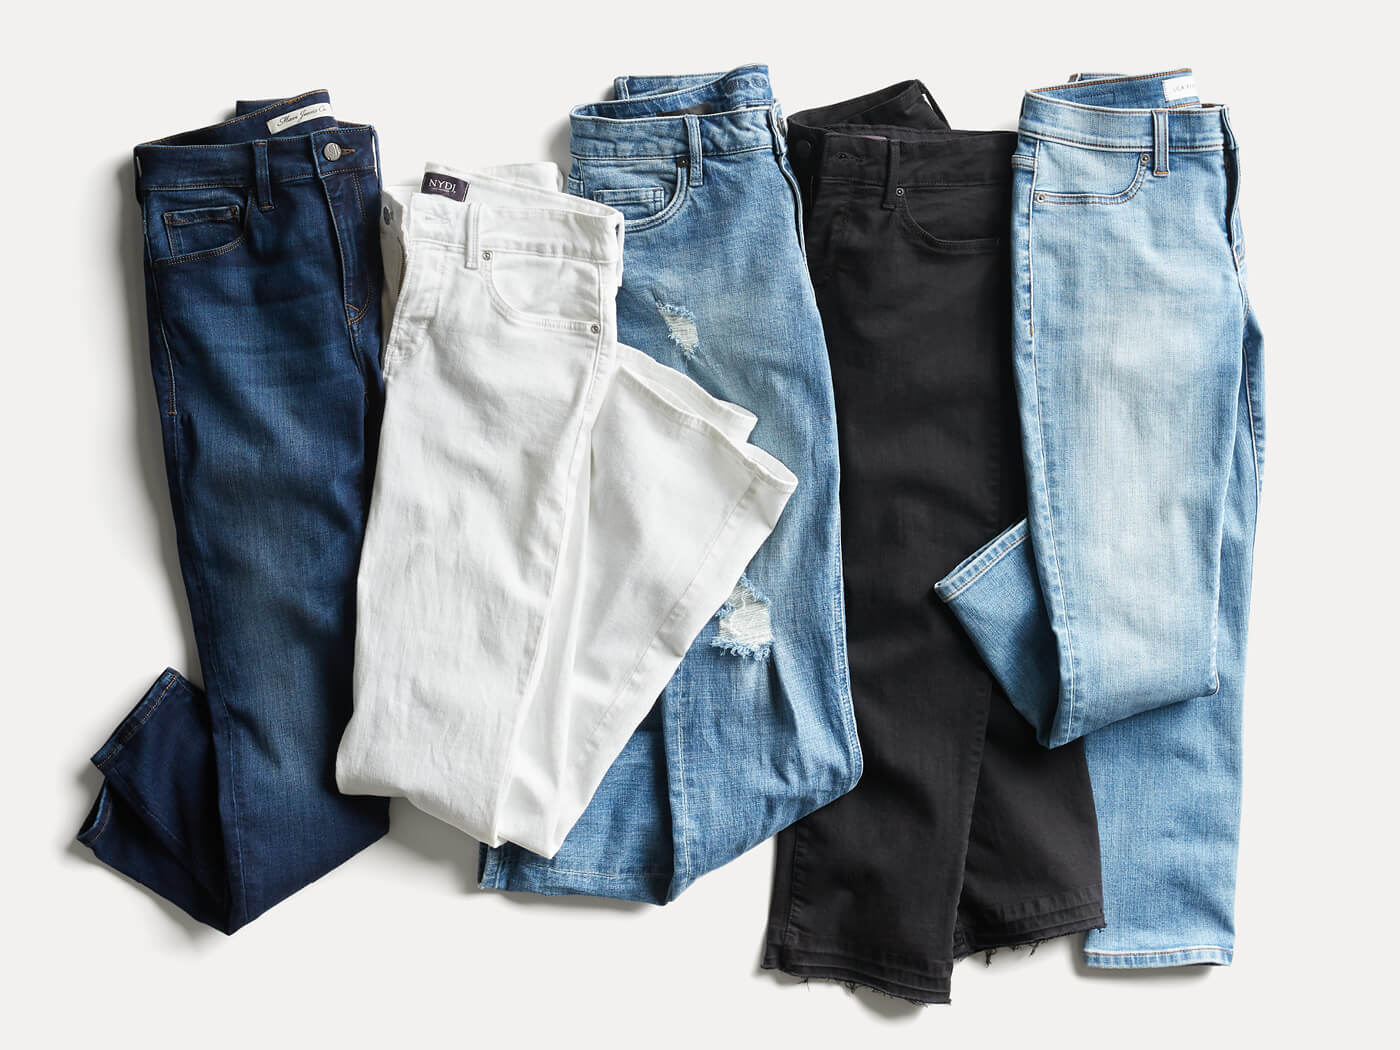 Stitch Fix Denim Brands